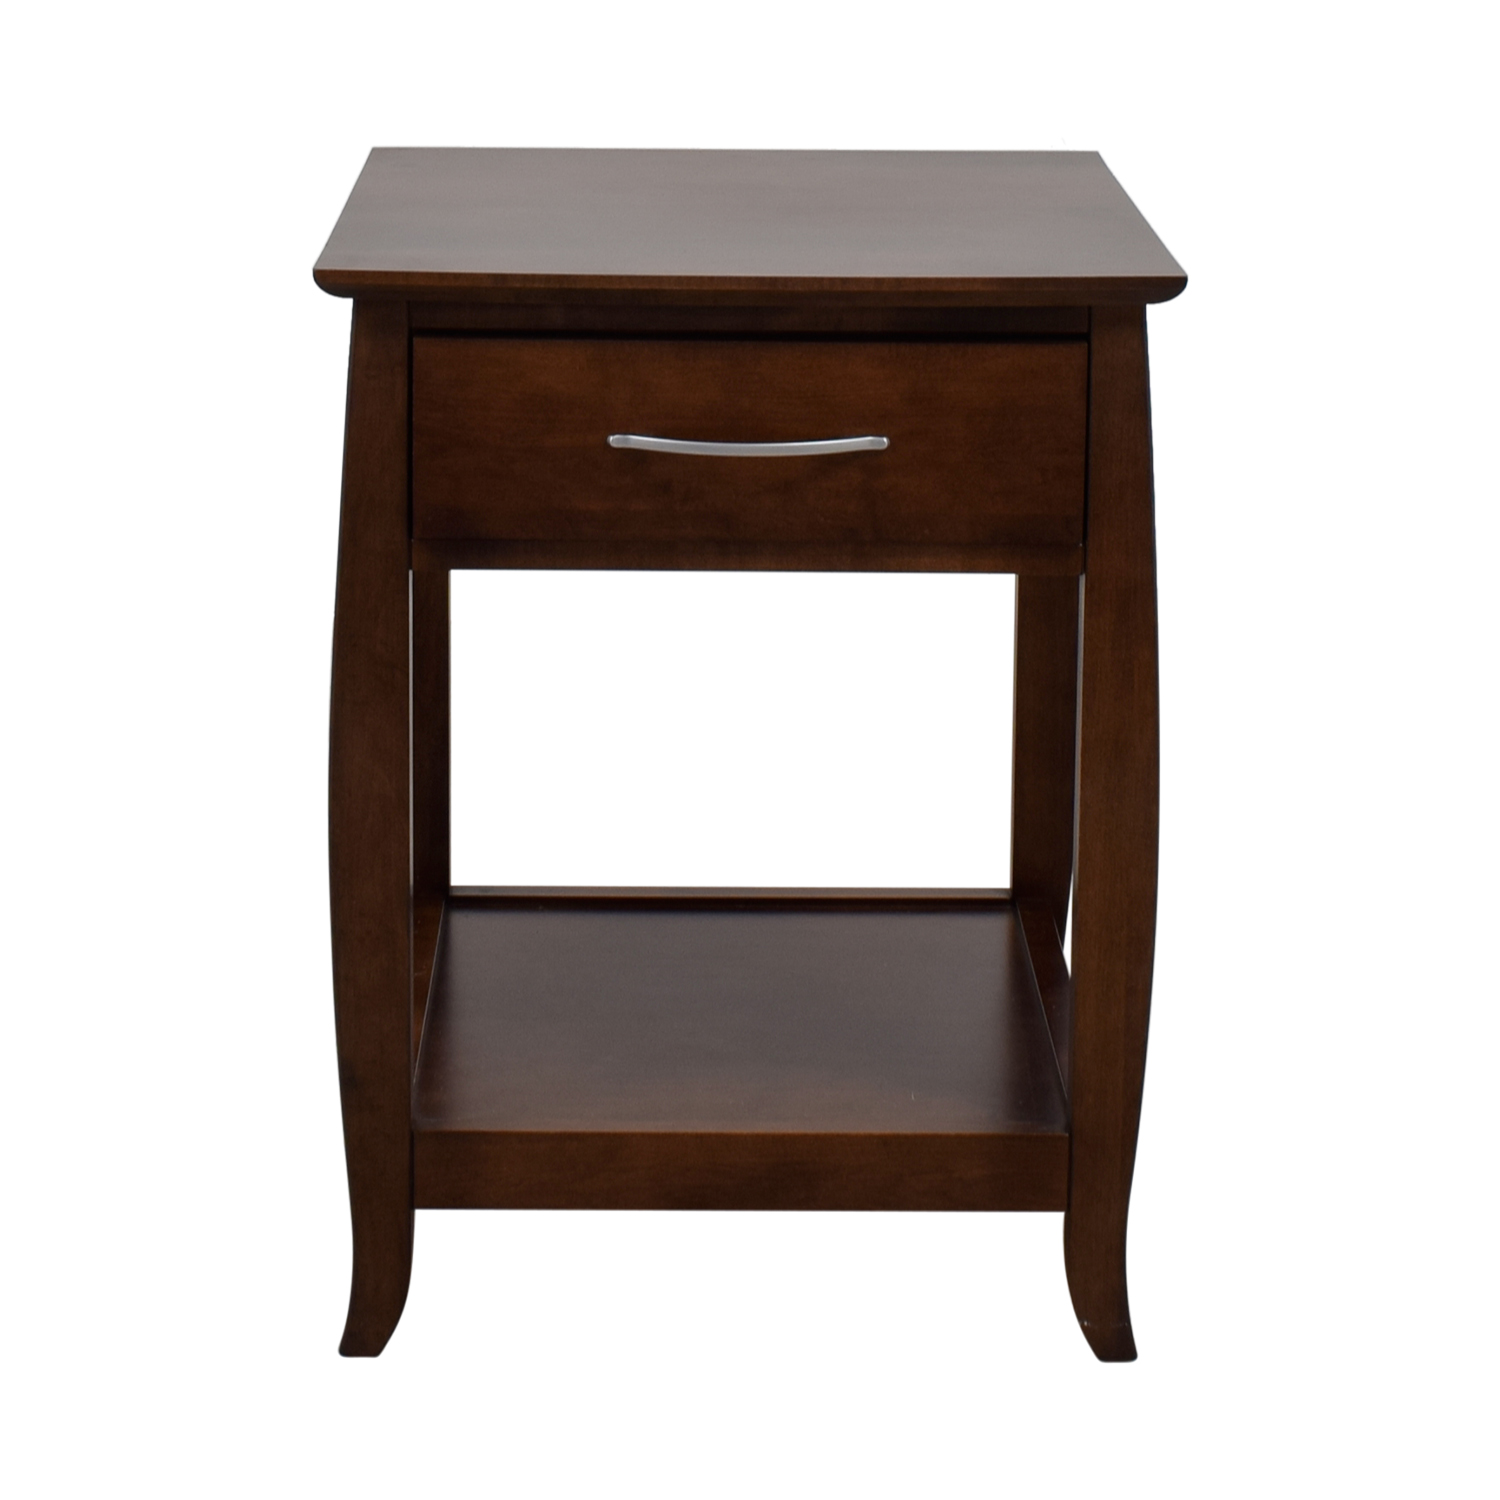 buy Baronet Baronet Single-Drawer Wood Nightstand online